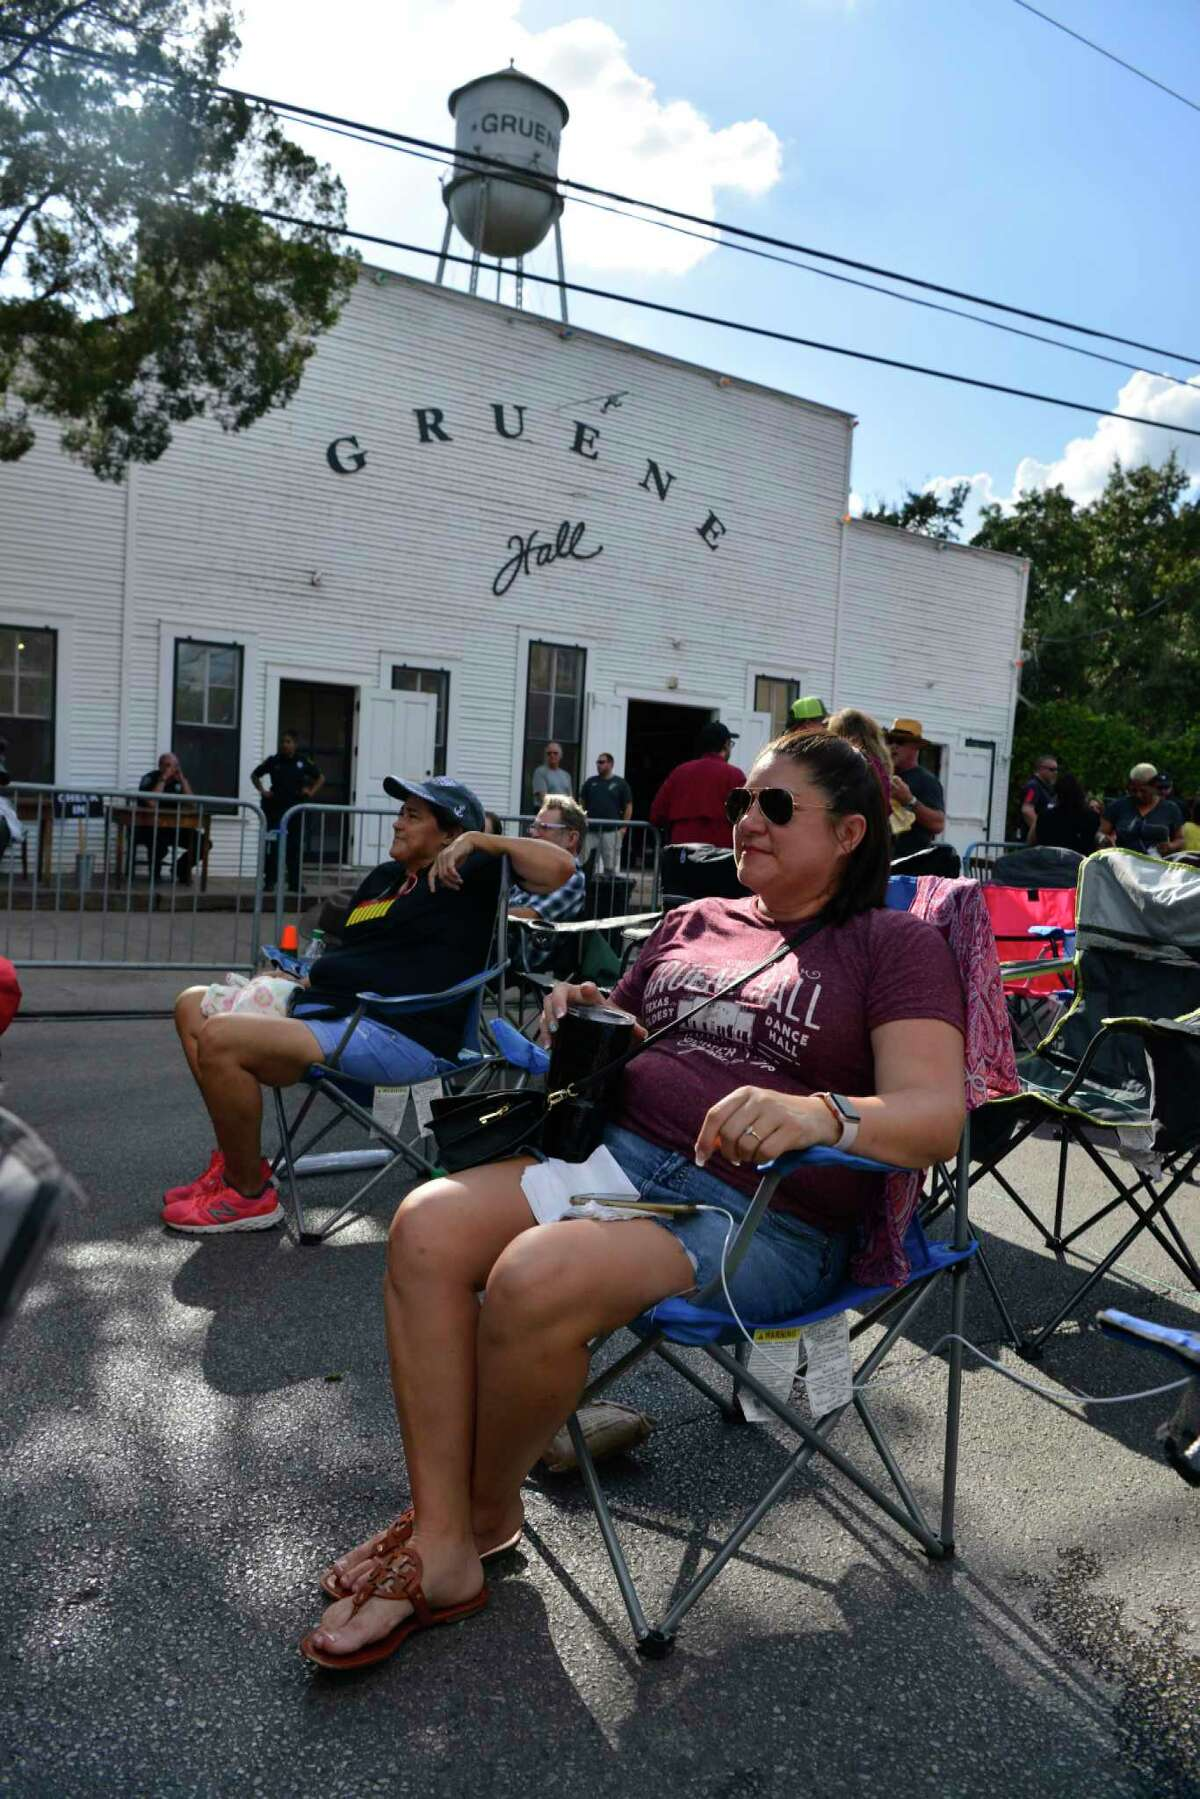 Samantha Rivera waits outside Gruene Hall for an evening performance by Garth Brooks as part of his